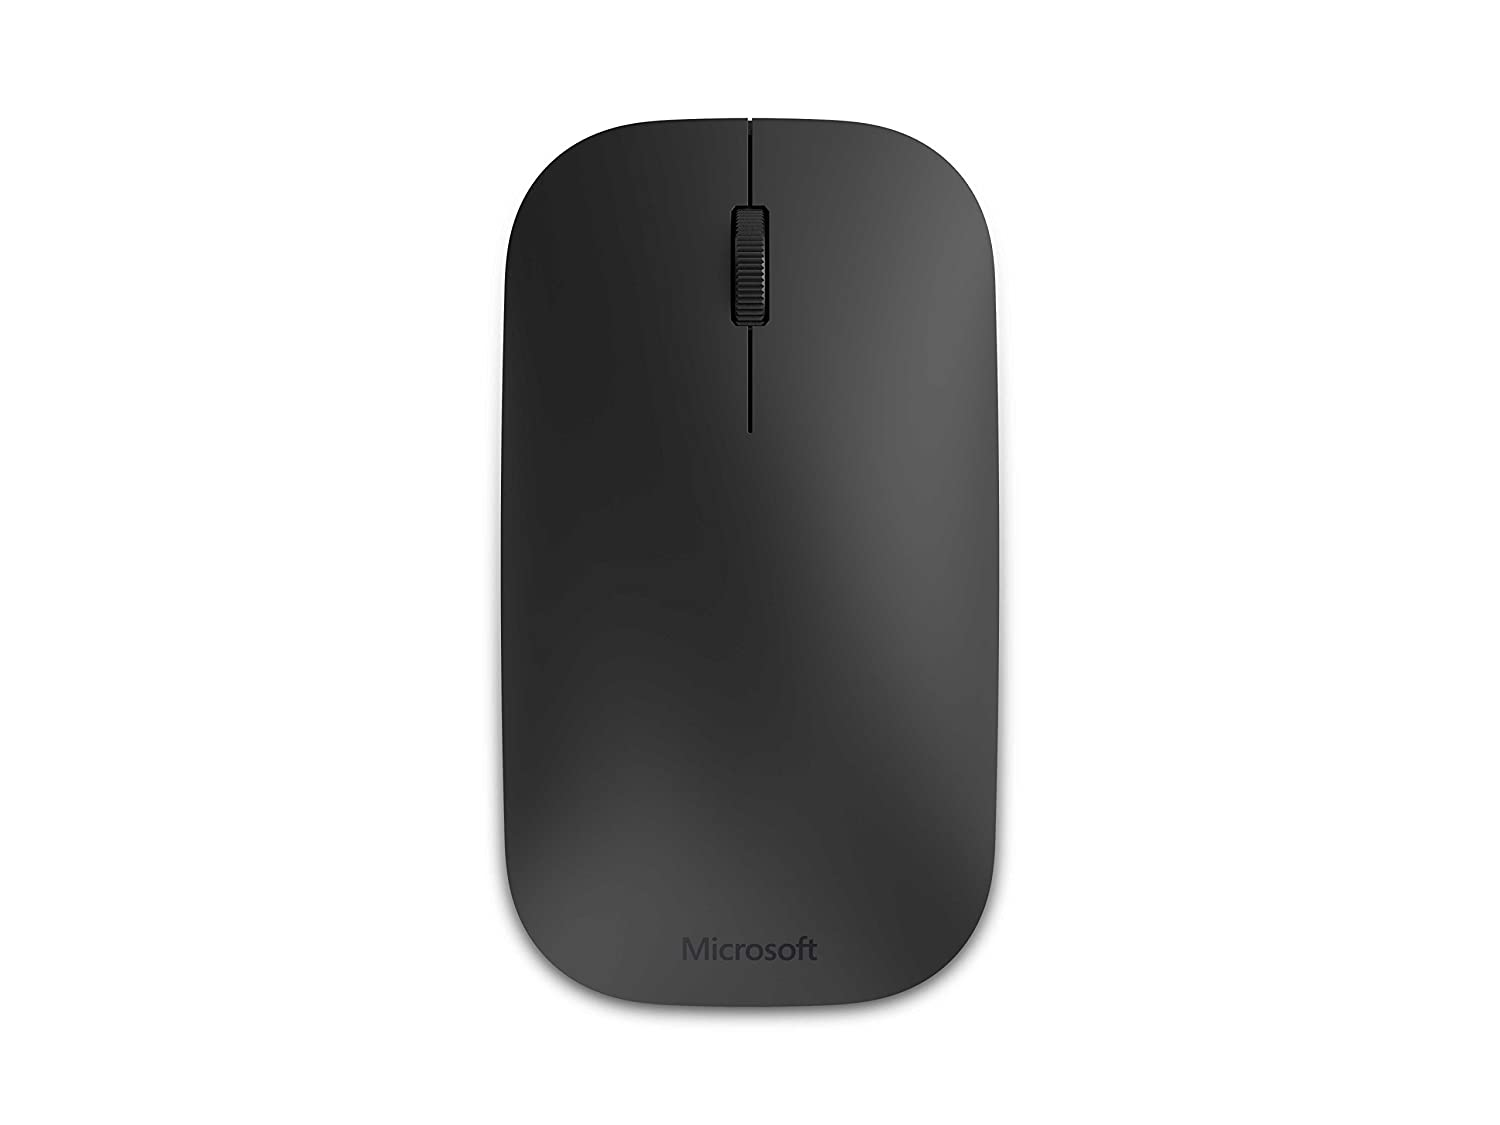 fc8274b655a Amazon.com: Microsoft Designer Bluetooth Mouse: Computers & Accessories